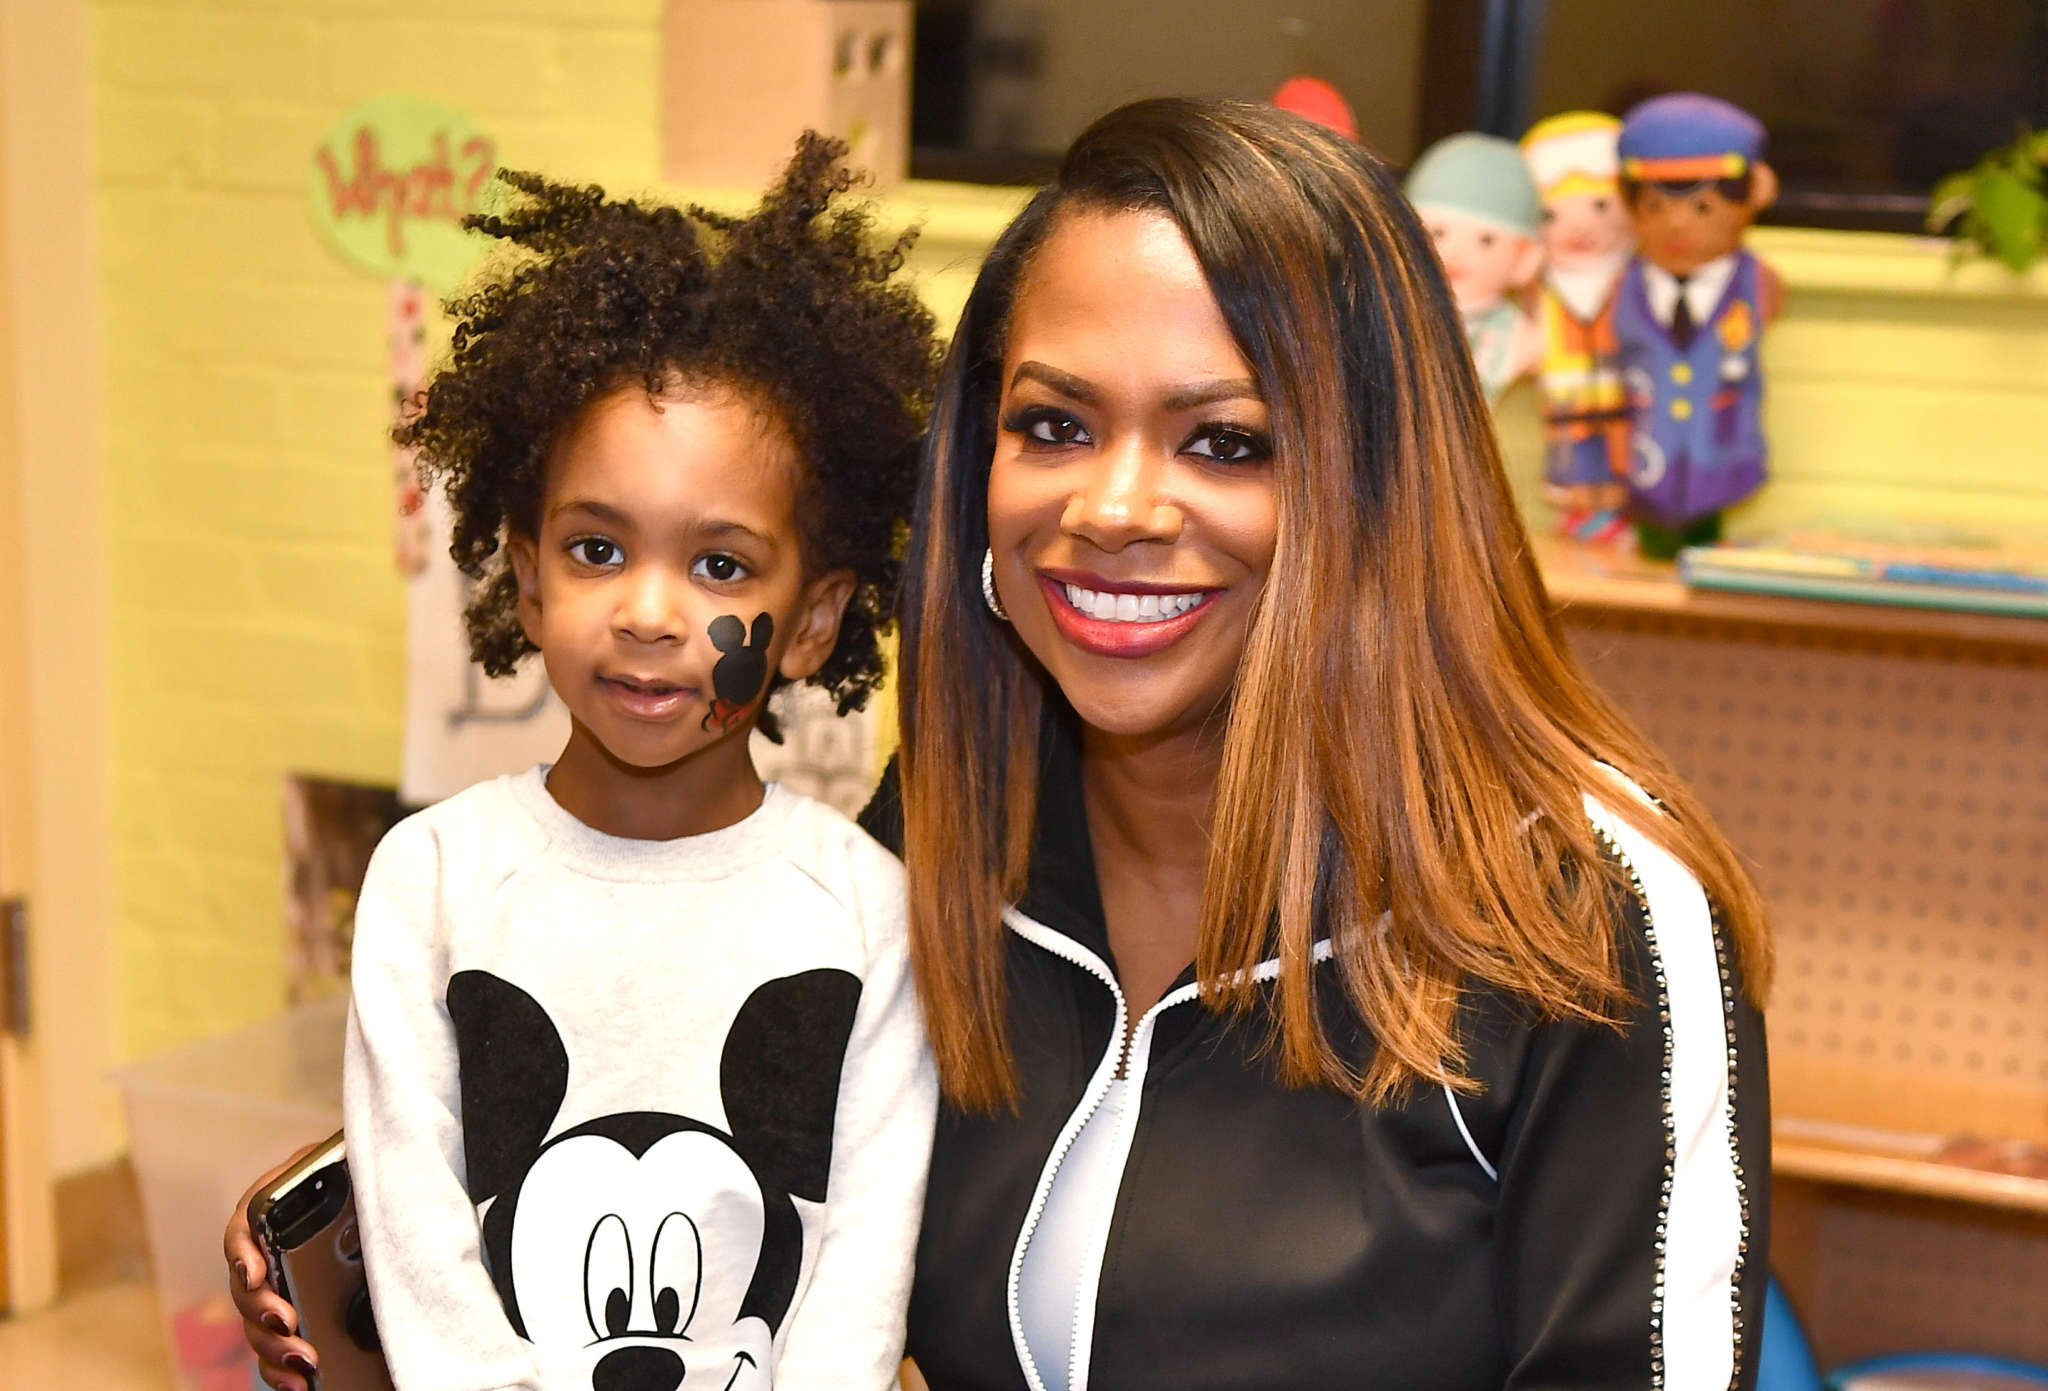 Kandi Burruss Had Her Son, Ace Wells Tucker In The Studio Recording - See The Sweet Pics